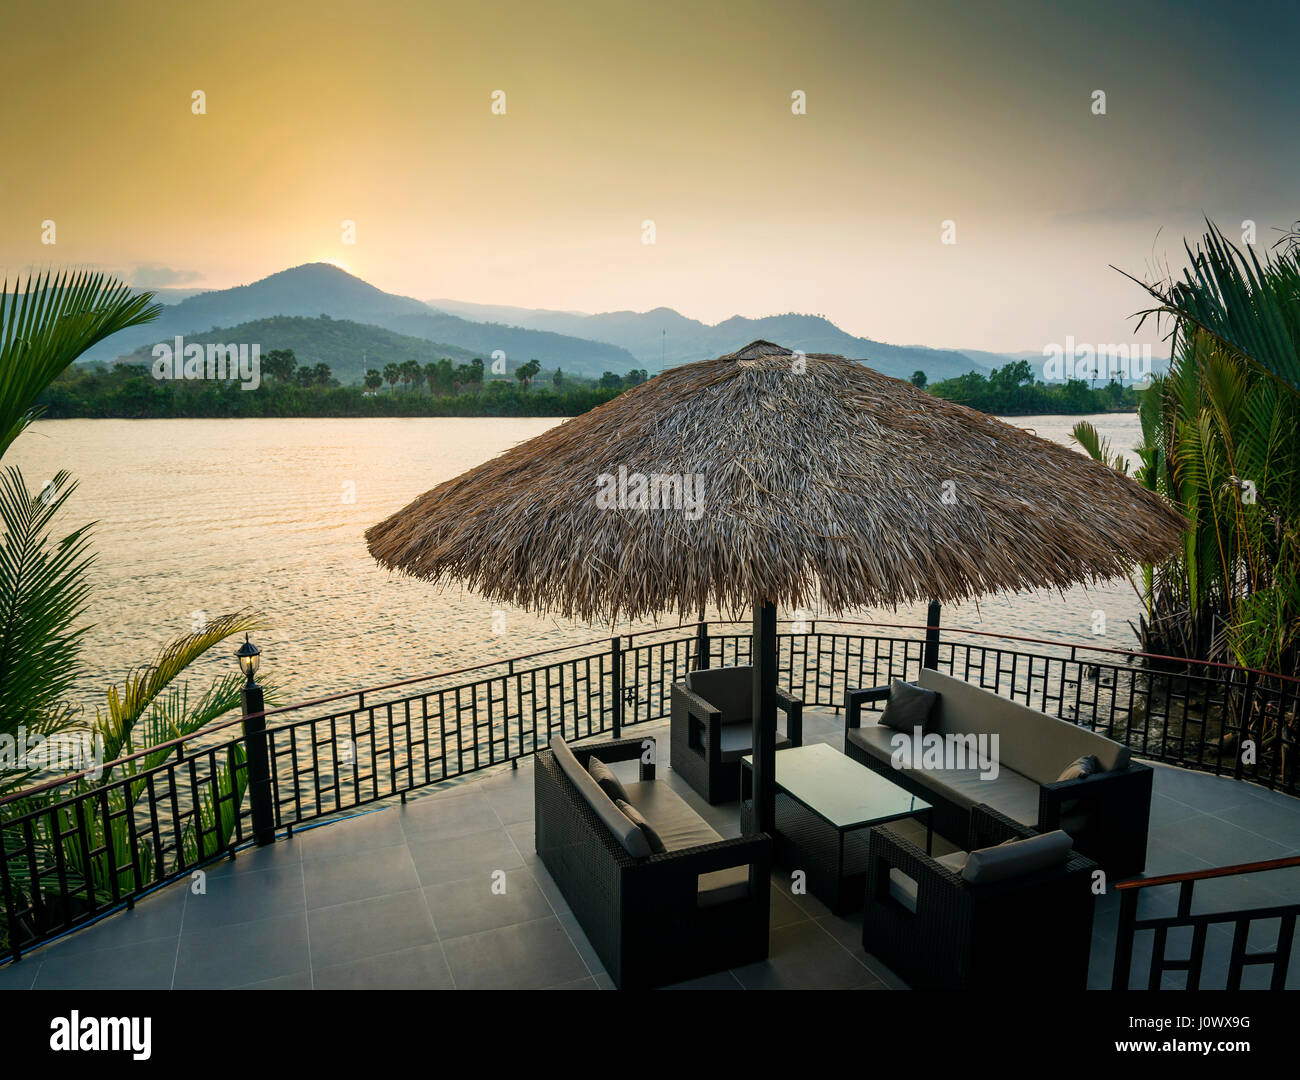 riverside sunset view in kampot cambodia asia with relaxing deck sofa chairs and table - Stock Image